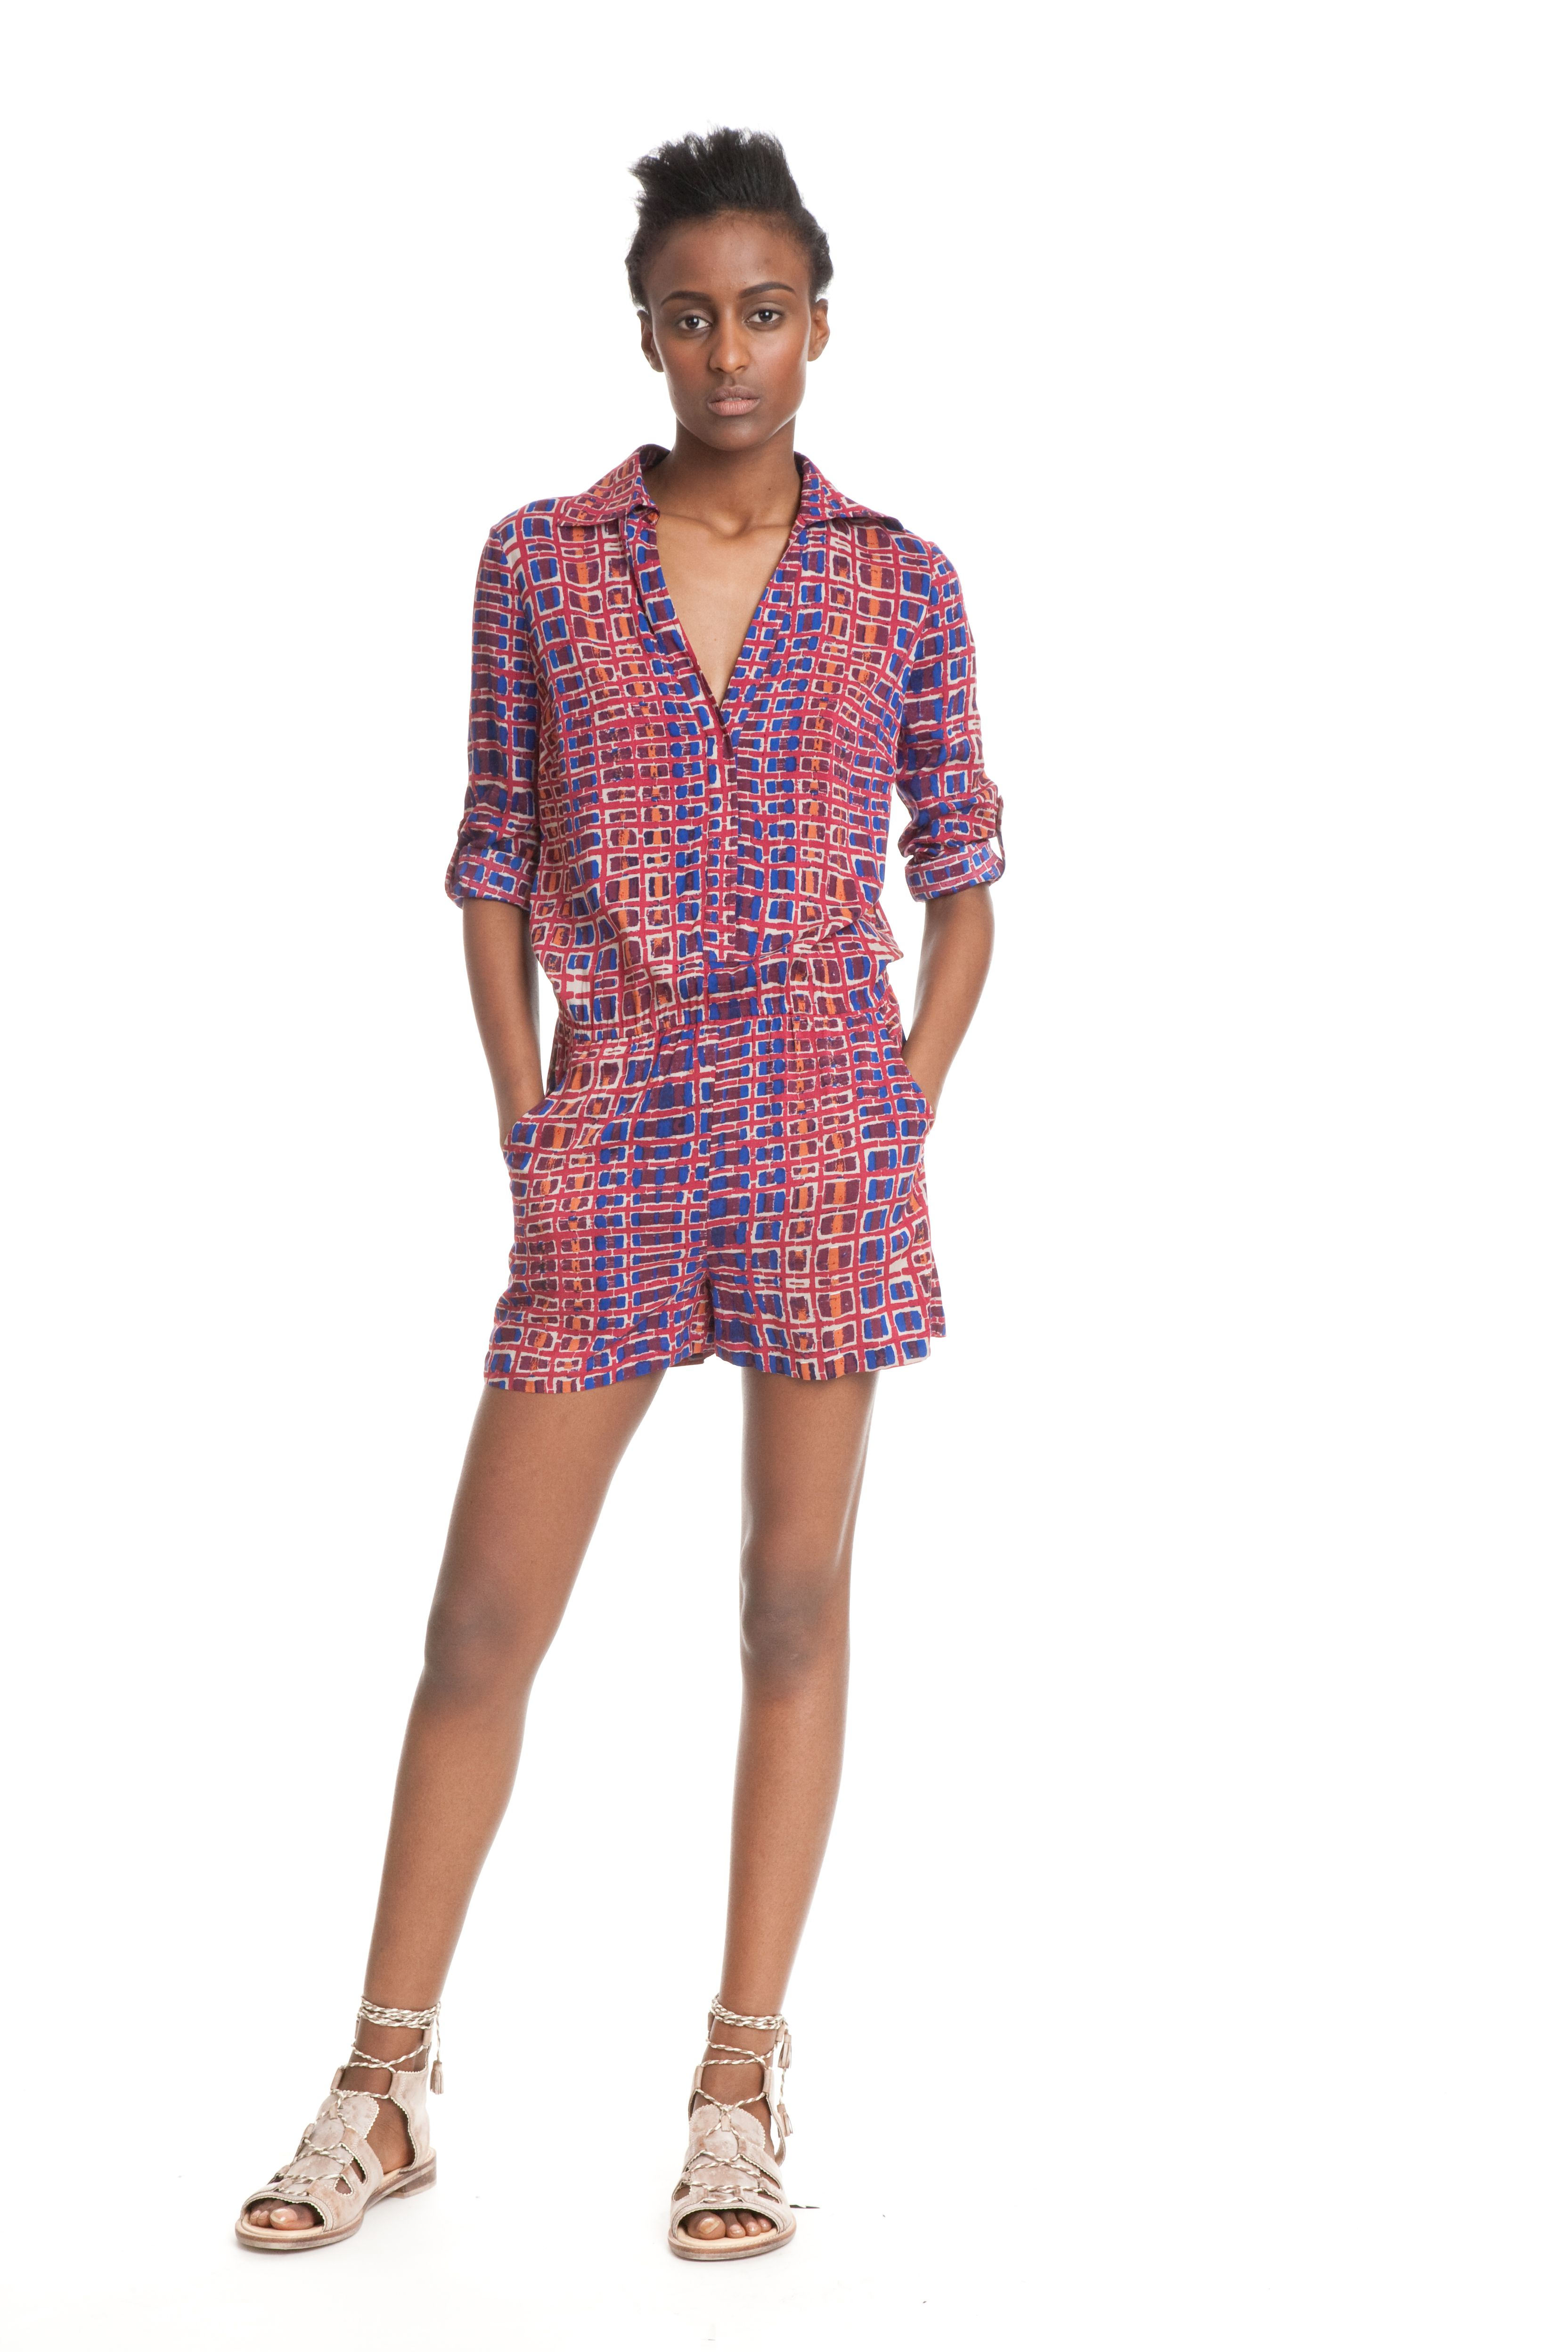 Easy Romper - This romper will easily make it to your top five go-to outfits, just throw it on and go. It is really just that easy!